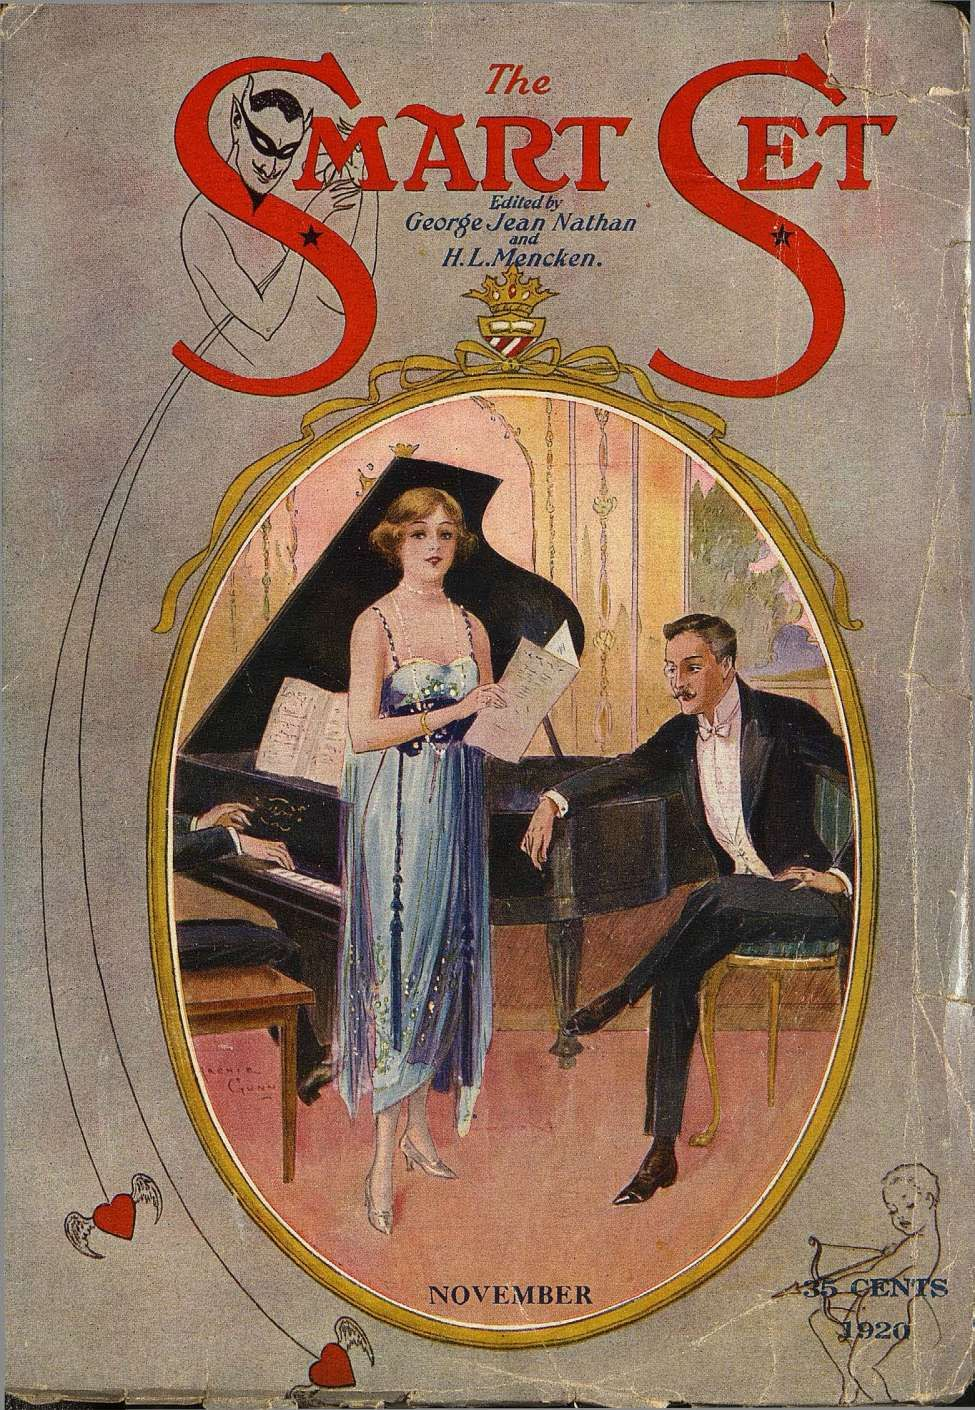 Comic Book Cover For The Smart Set v63 03